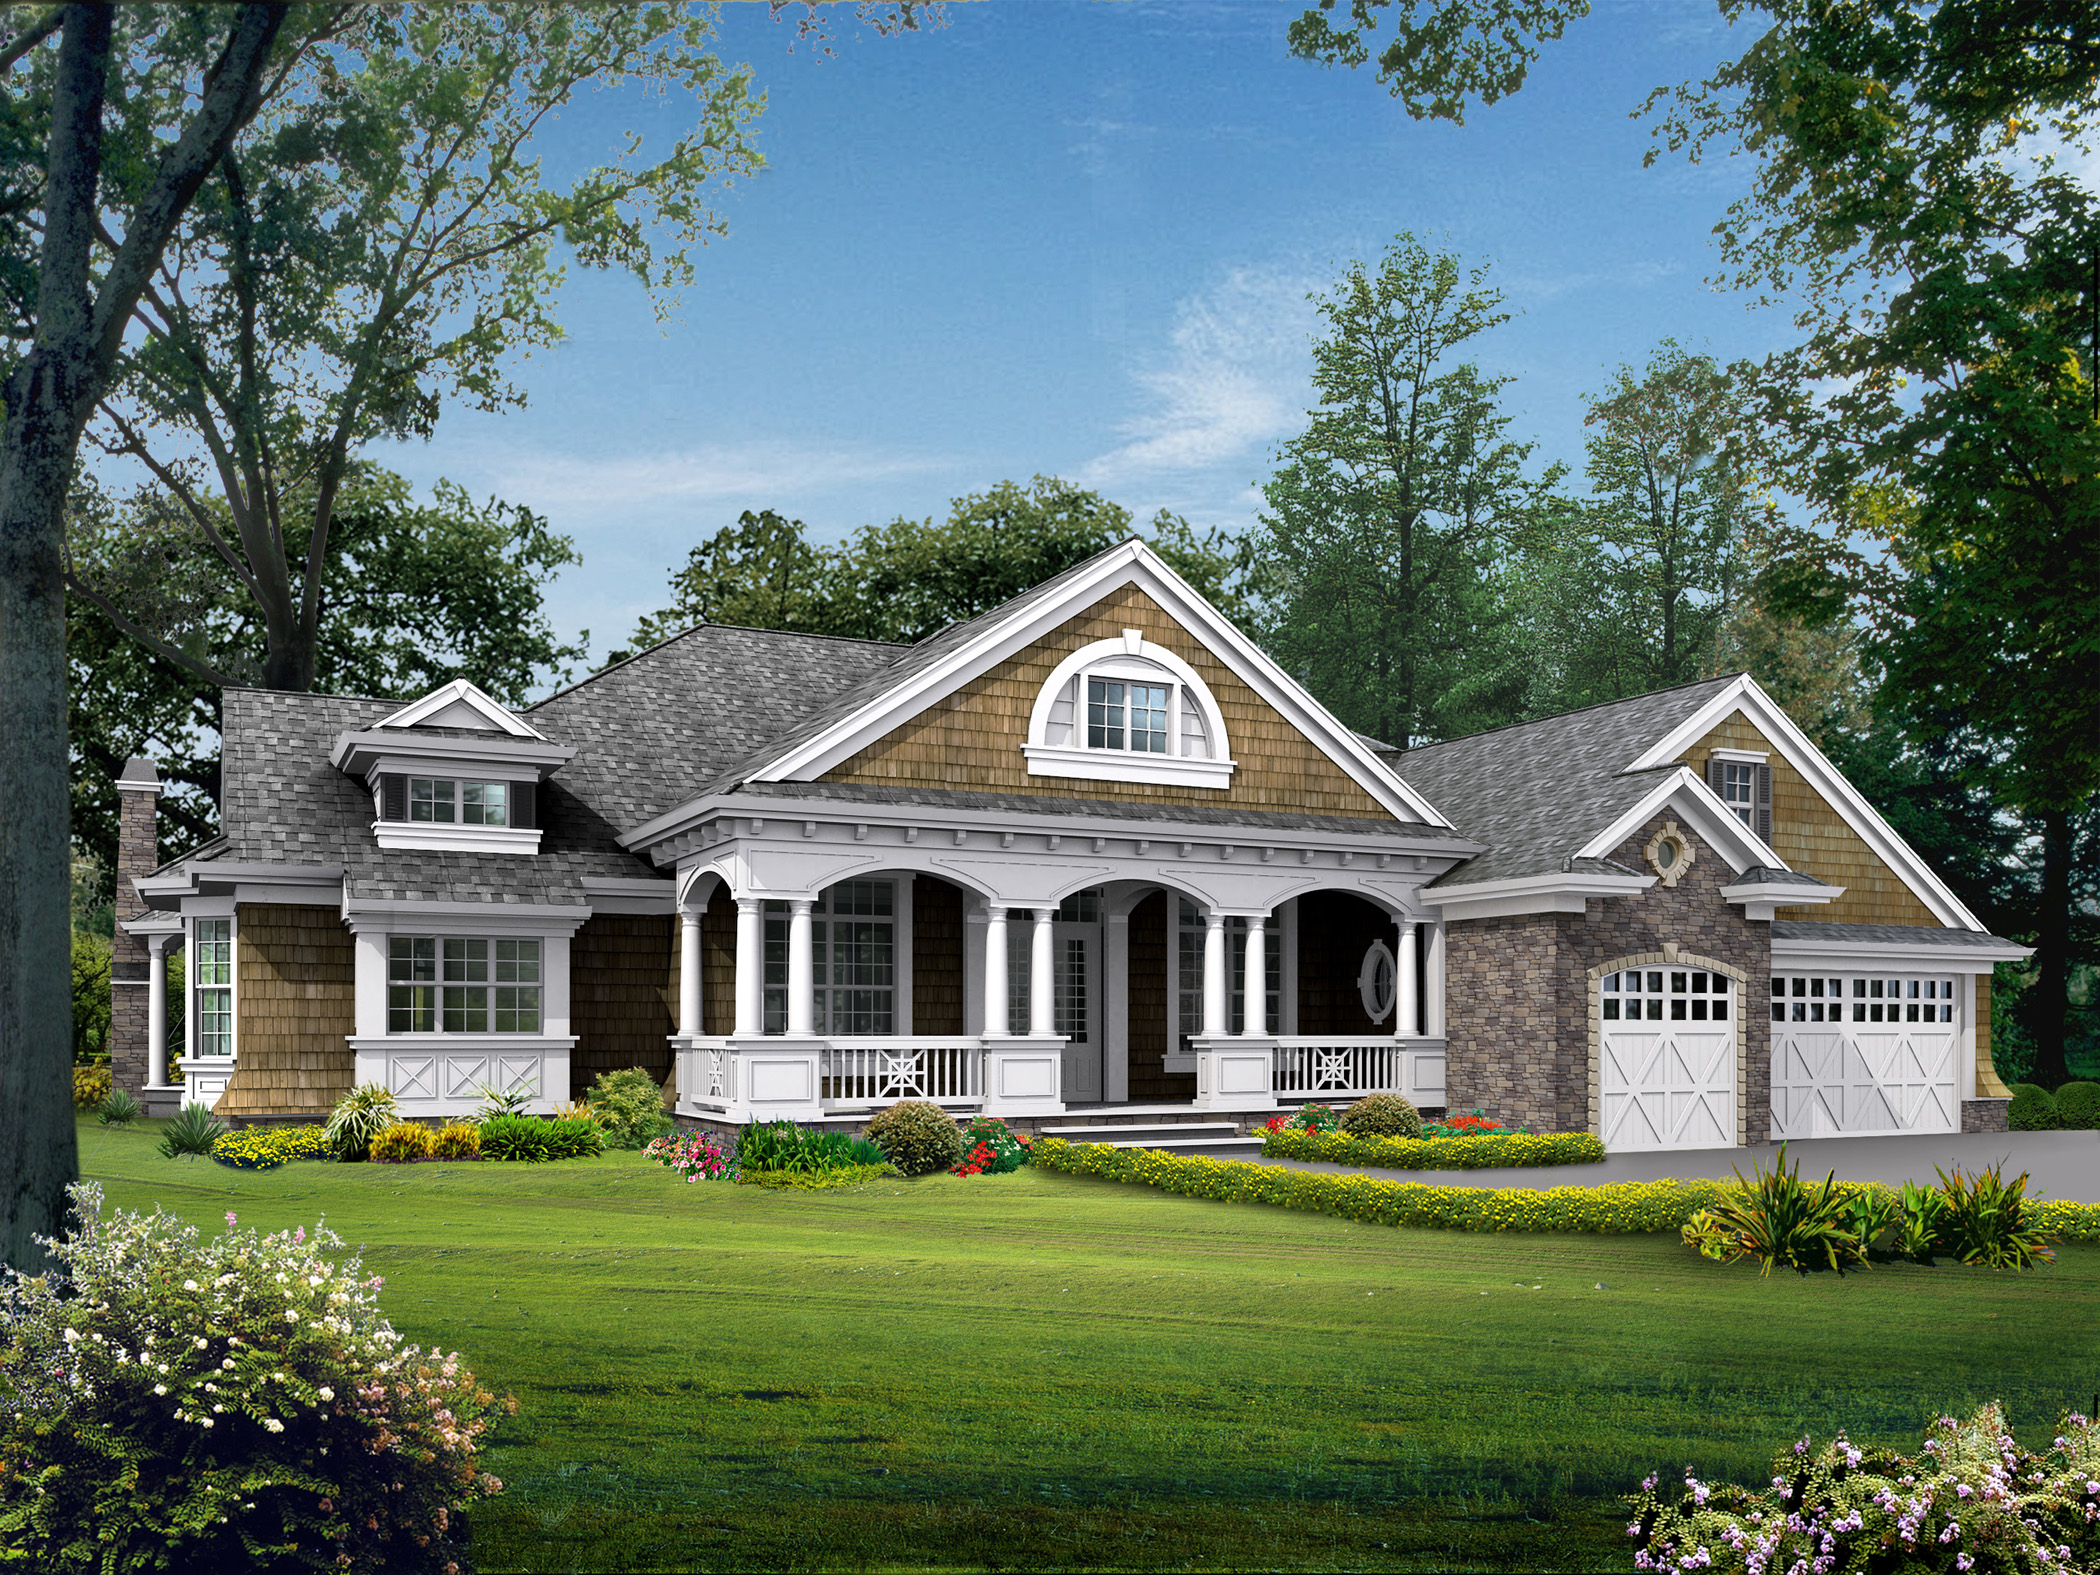 23224jd_1479211251 Rambler House Plans One Level on ranch rambler floor plans, very simple house plans, one level colonial house plans, ranch house plans, one level contemporary house plans,